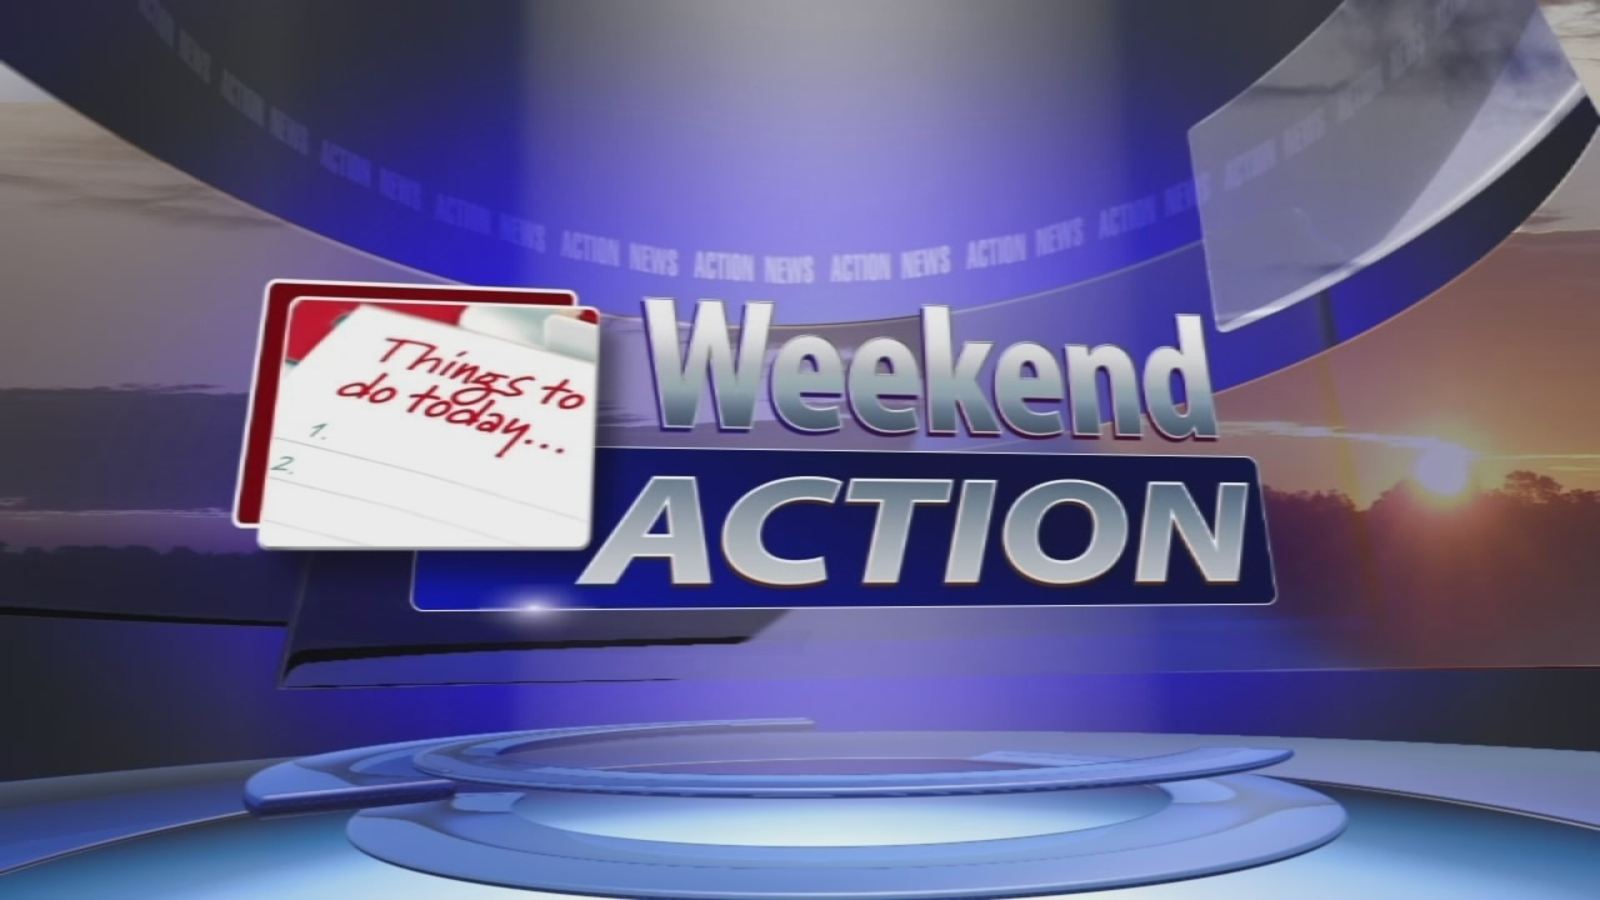 Weekend Action | 6abc com